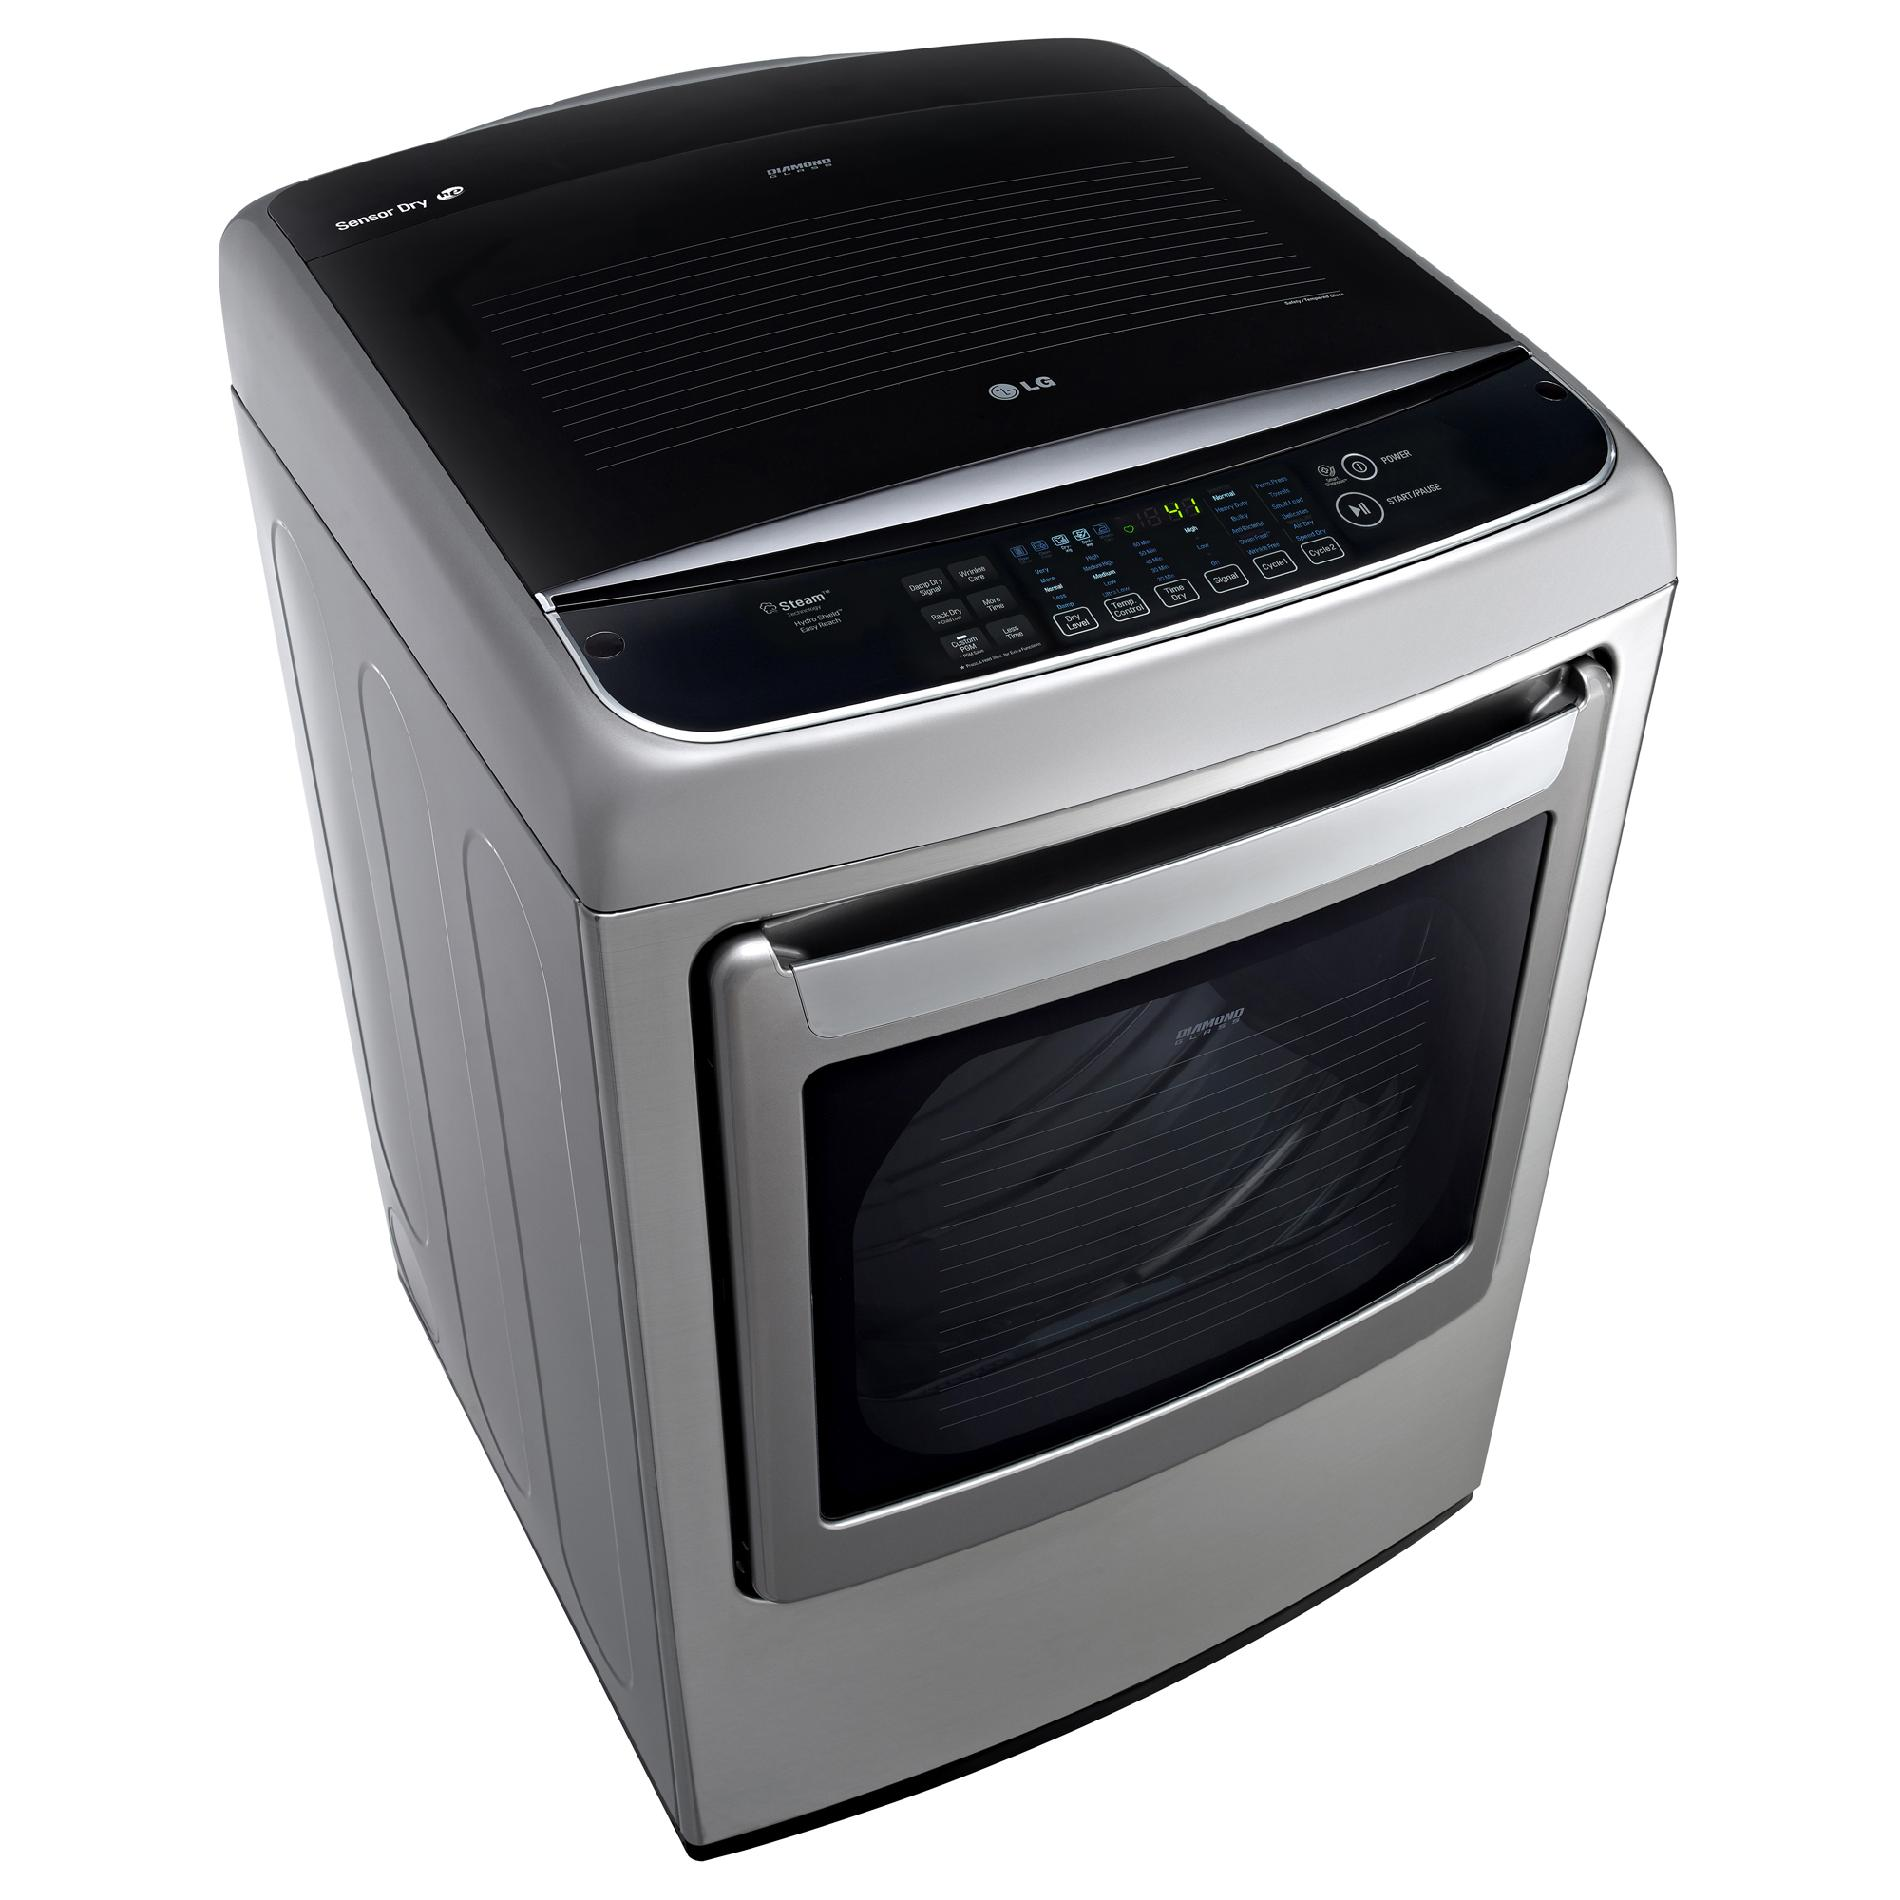 LG DLGY1702V 7.3 cu. ft. Graphite Steel Steam Gas Dryer w/ Front Controls